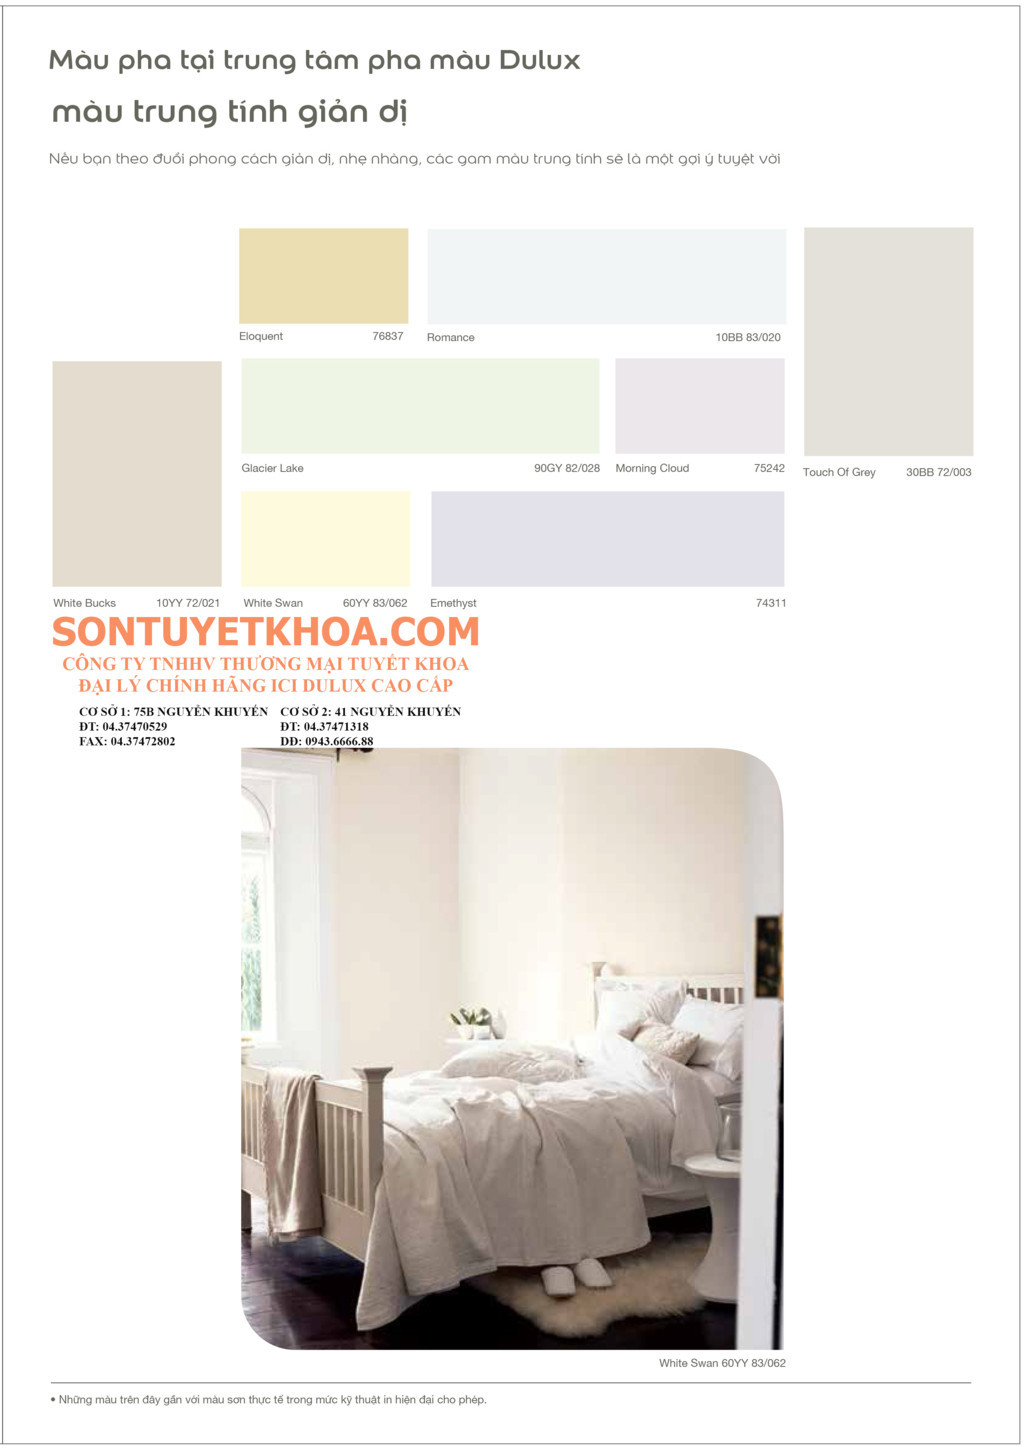 bang-mau-son-noi-that-cao-cap-dulux-inspire-6 -son-dulux